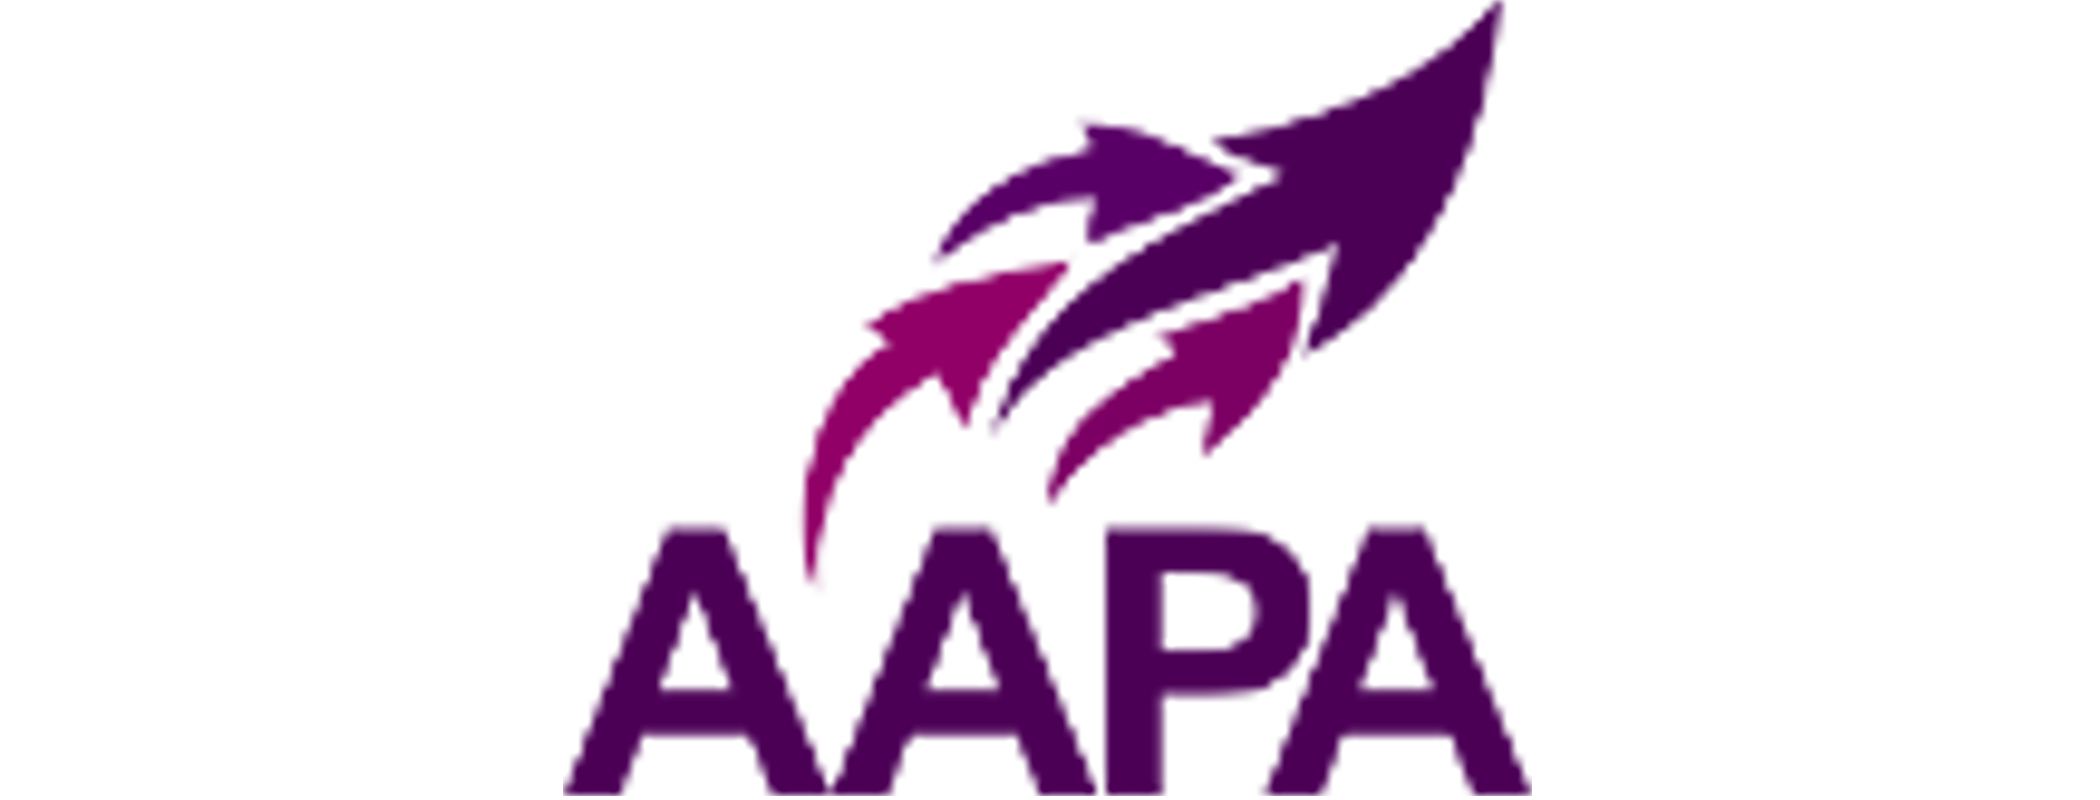 - Asian American Professional Association13875 Cerritos Corp Dr, # ACerritos, CA 90703(909) 762-9136 | aapamentoring.com